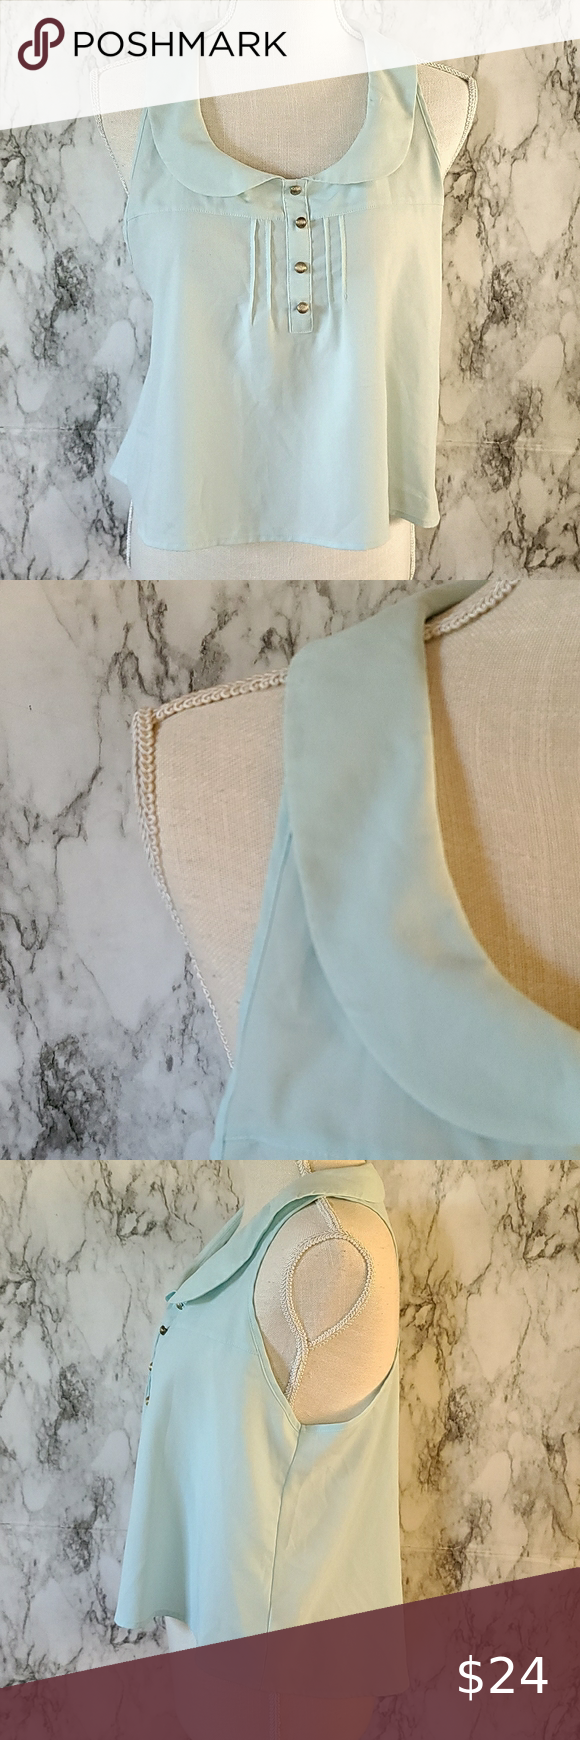 Newold cropped blouse size large Simply adorable pale aqua peter pan collar pintuck crop top size large 18